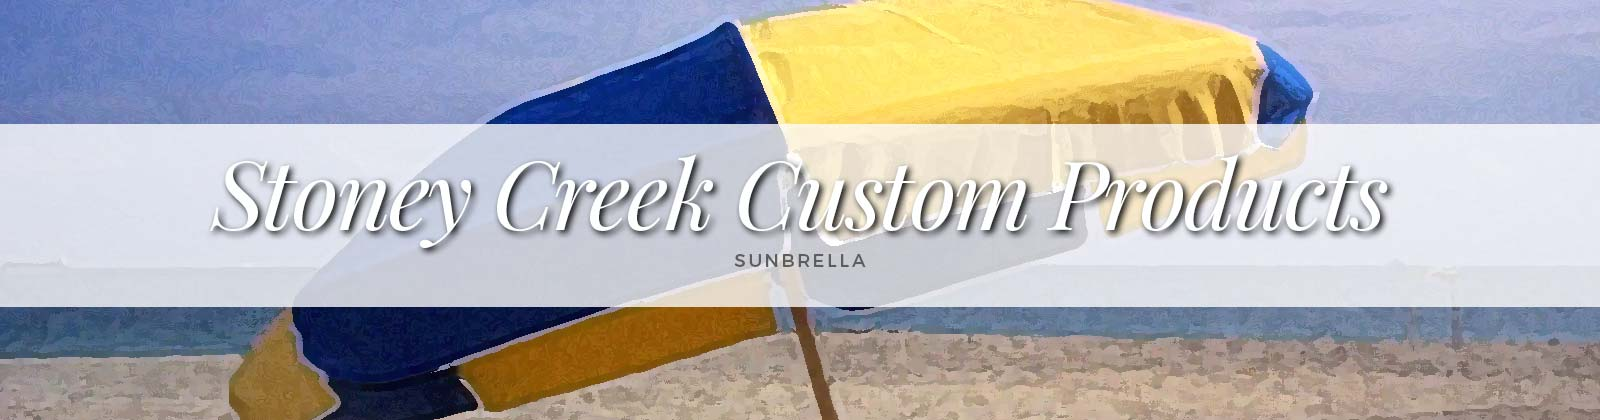 Sunbrella Umbrellas & Fabric, StoneyCreek Custom Products